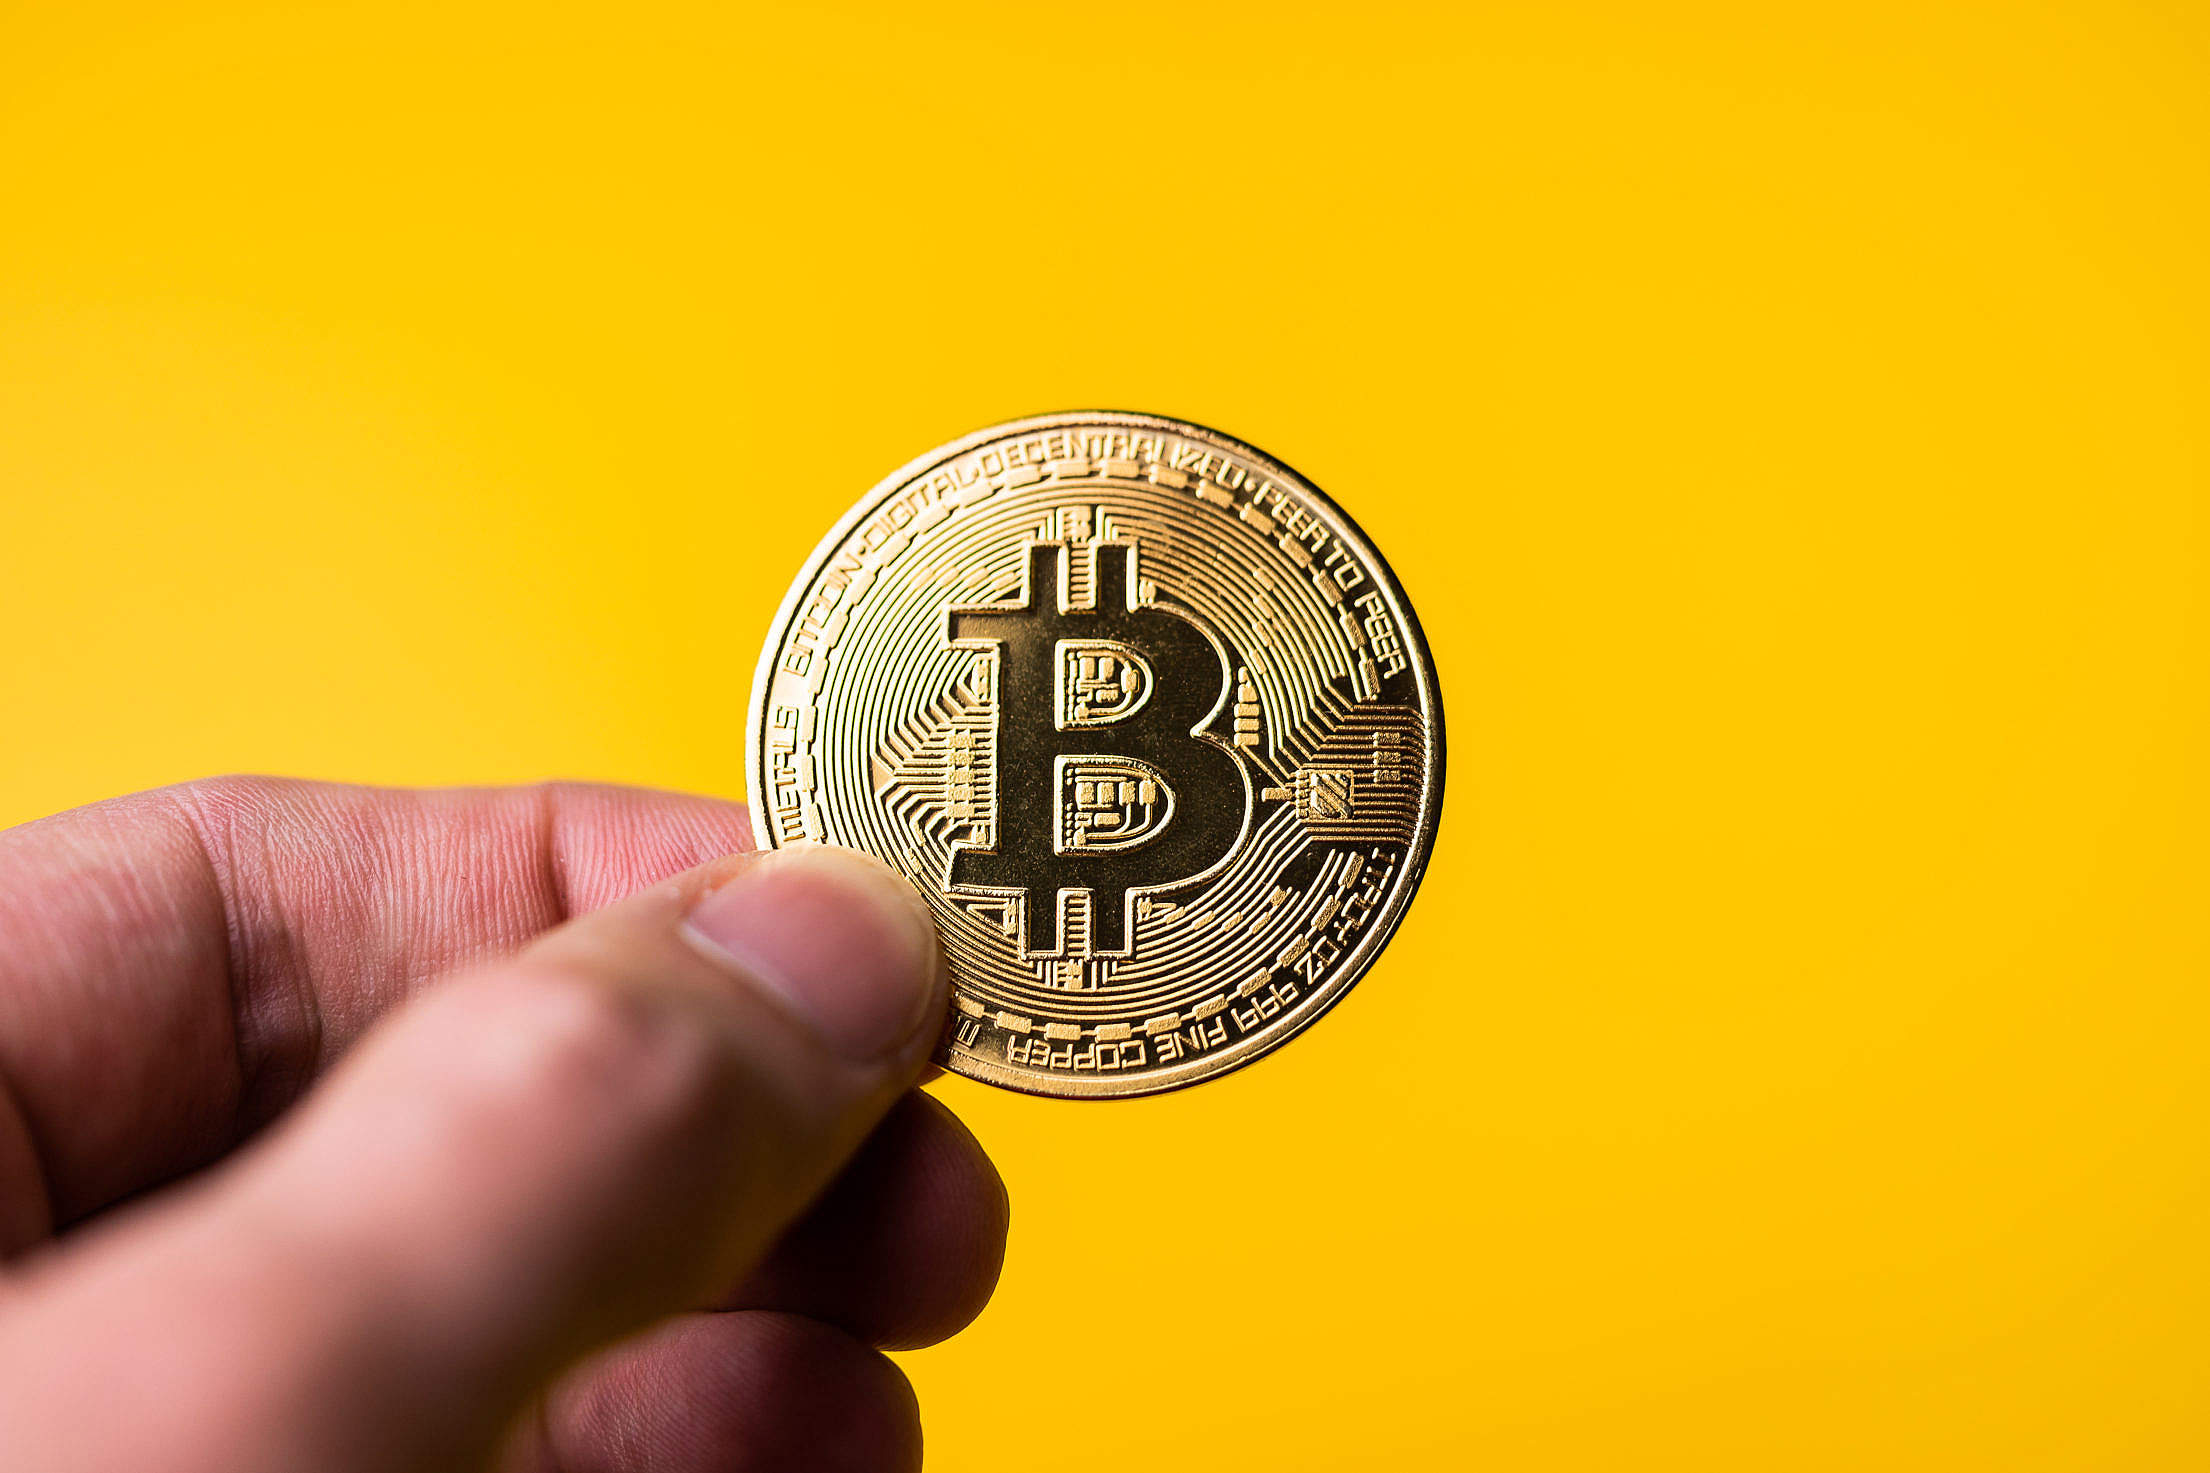 Bitcoin Golden Coin on Yellow Background Free Stock Photo